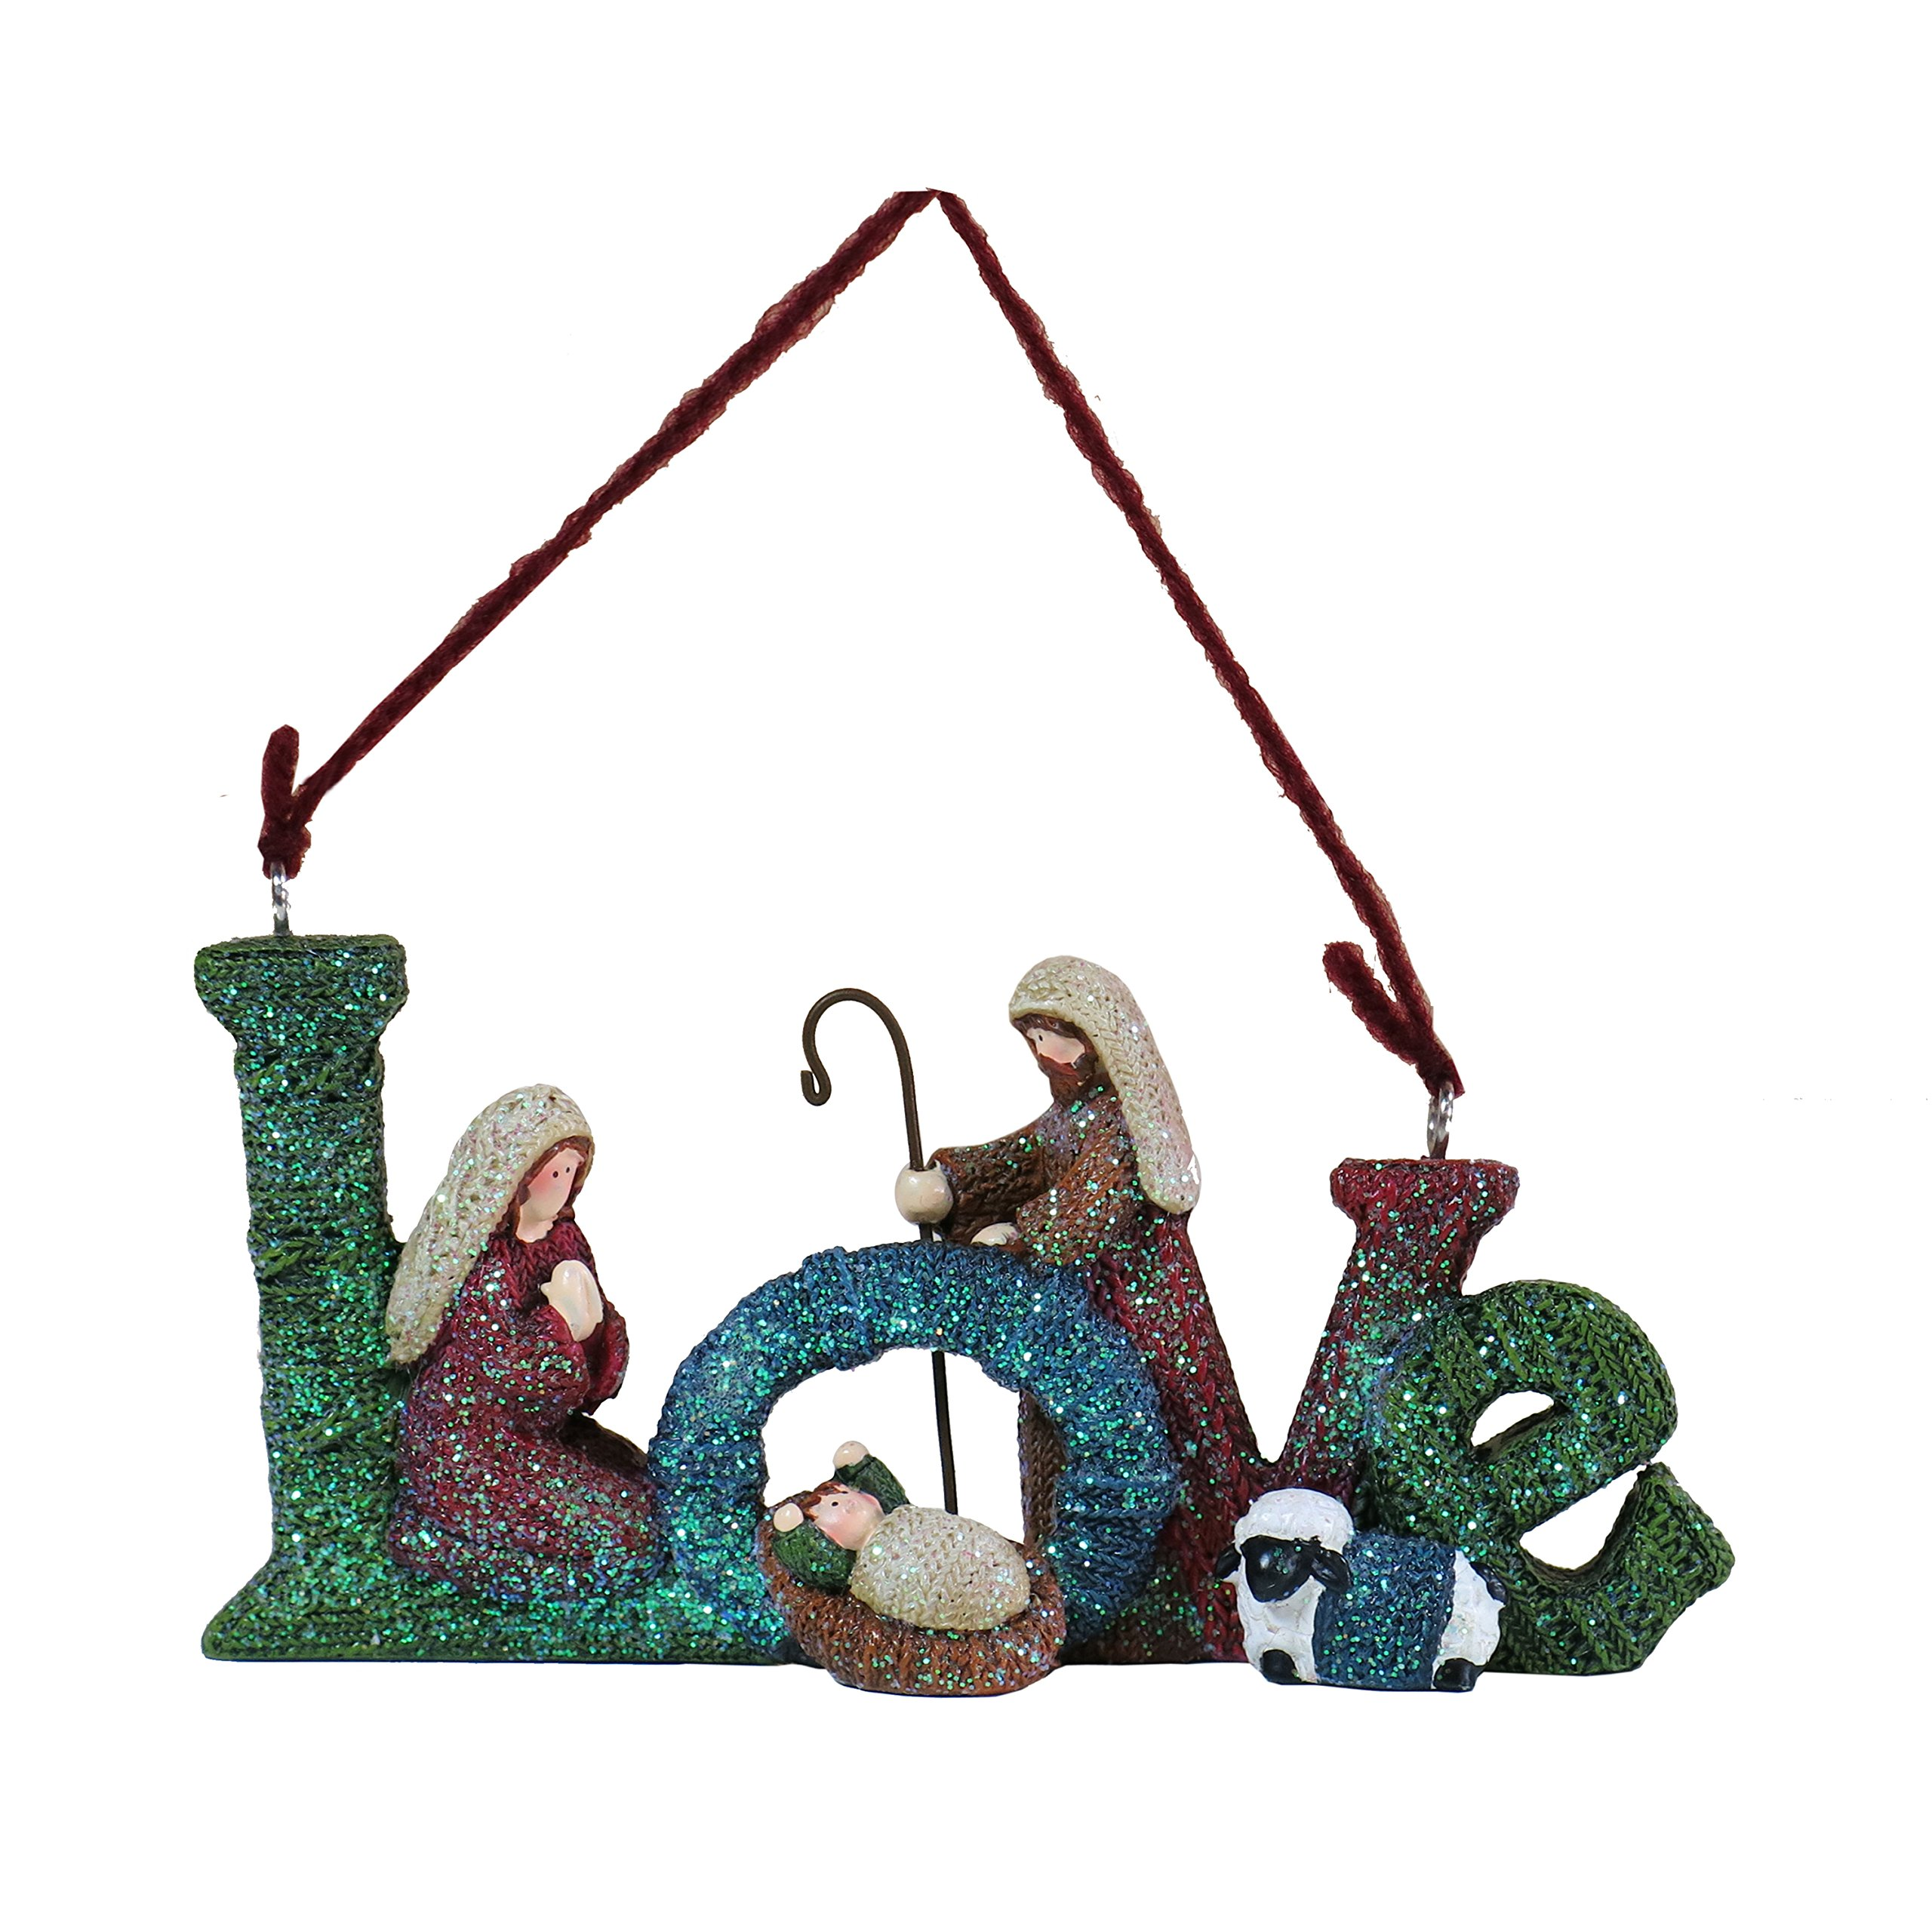 Lee's Home Nativity Knitting Finish ''Love'' with Holy Family Ornament by Lee's Home